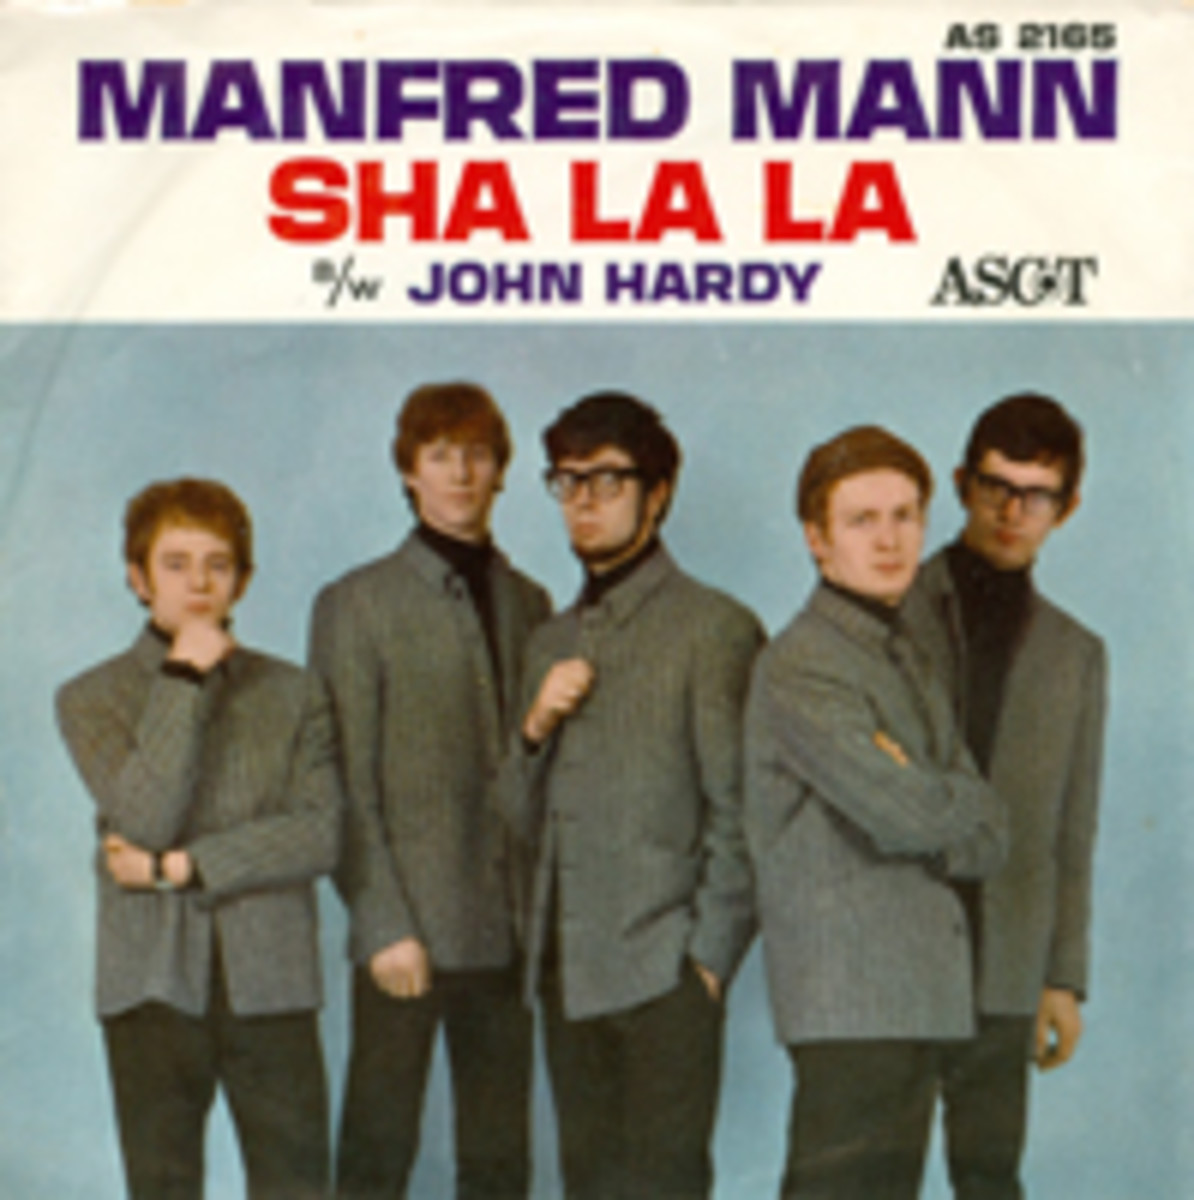 Manfred Mann Sha La La picture sleeve